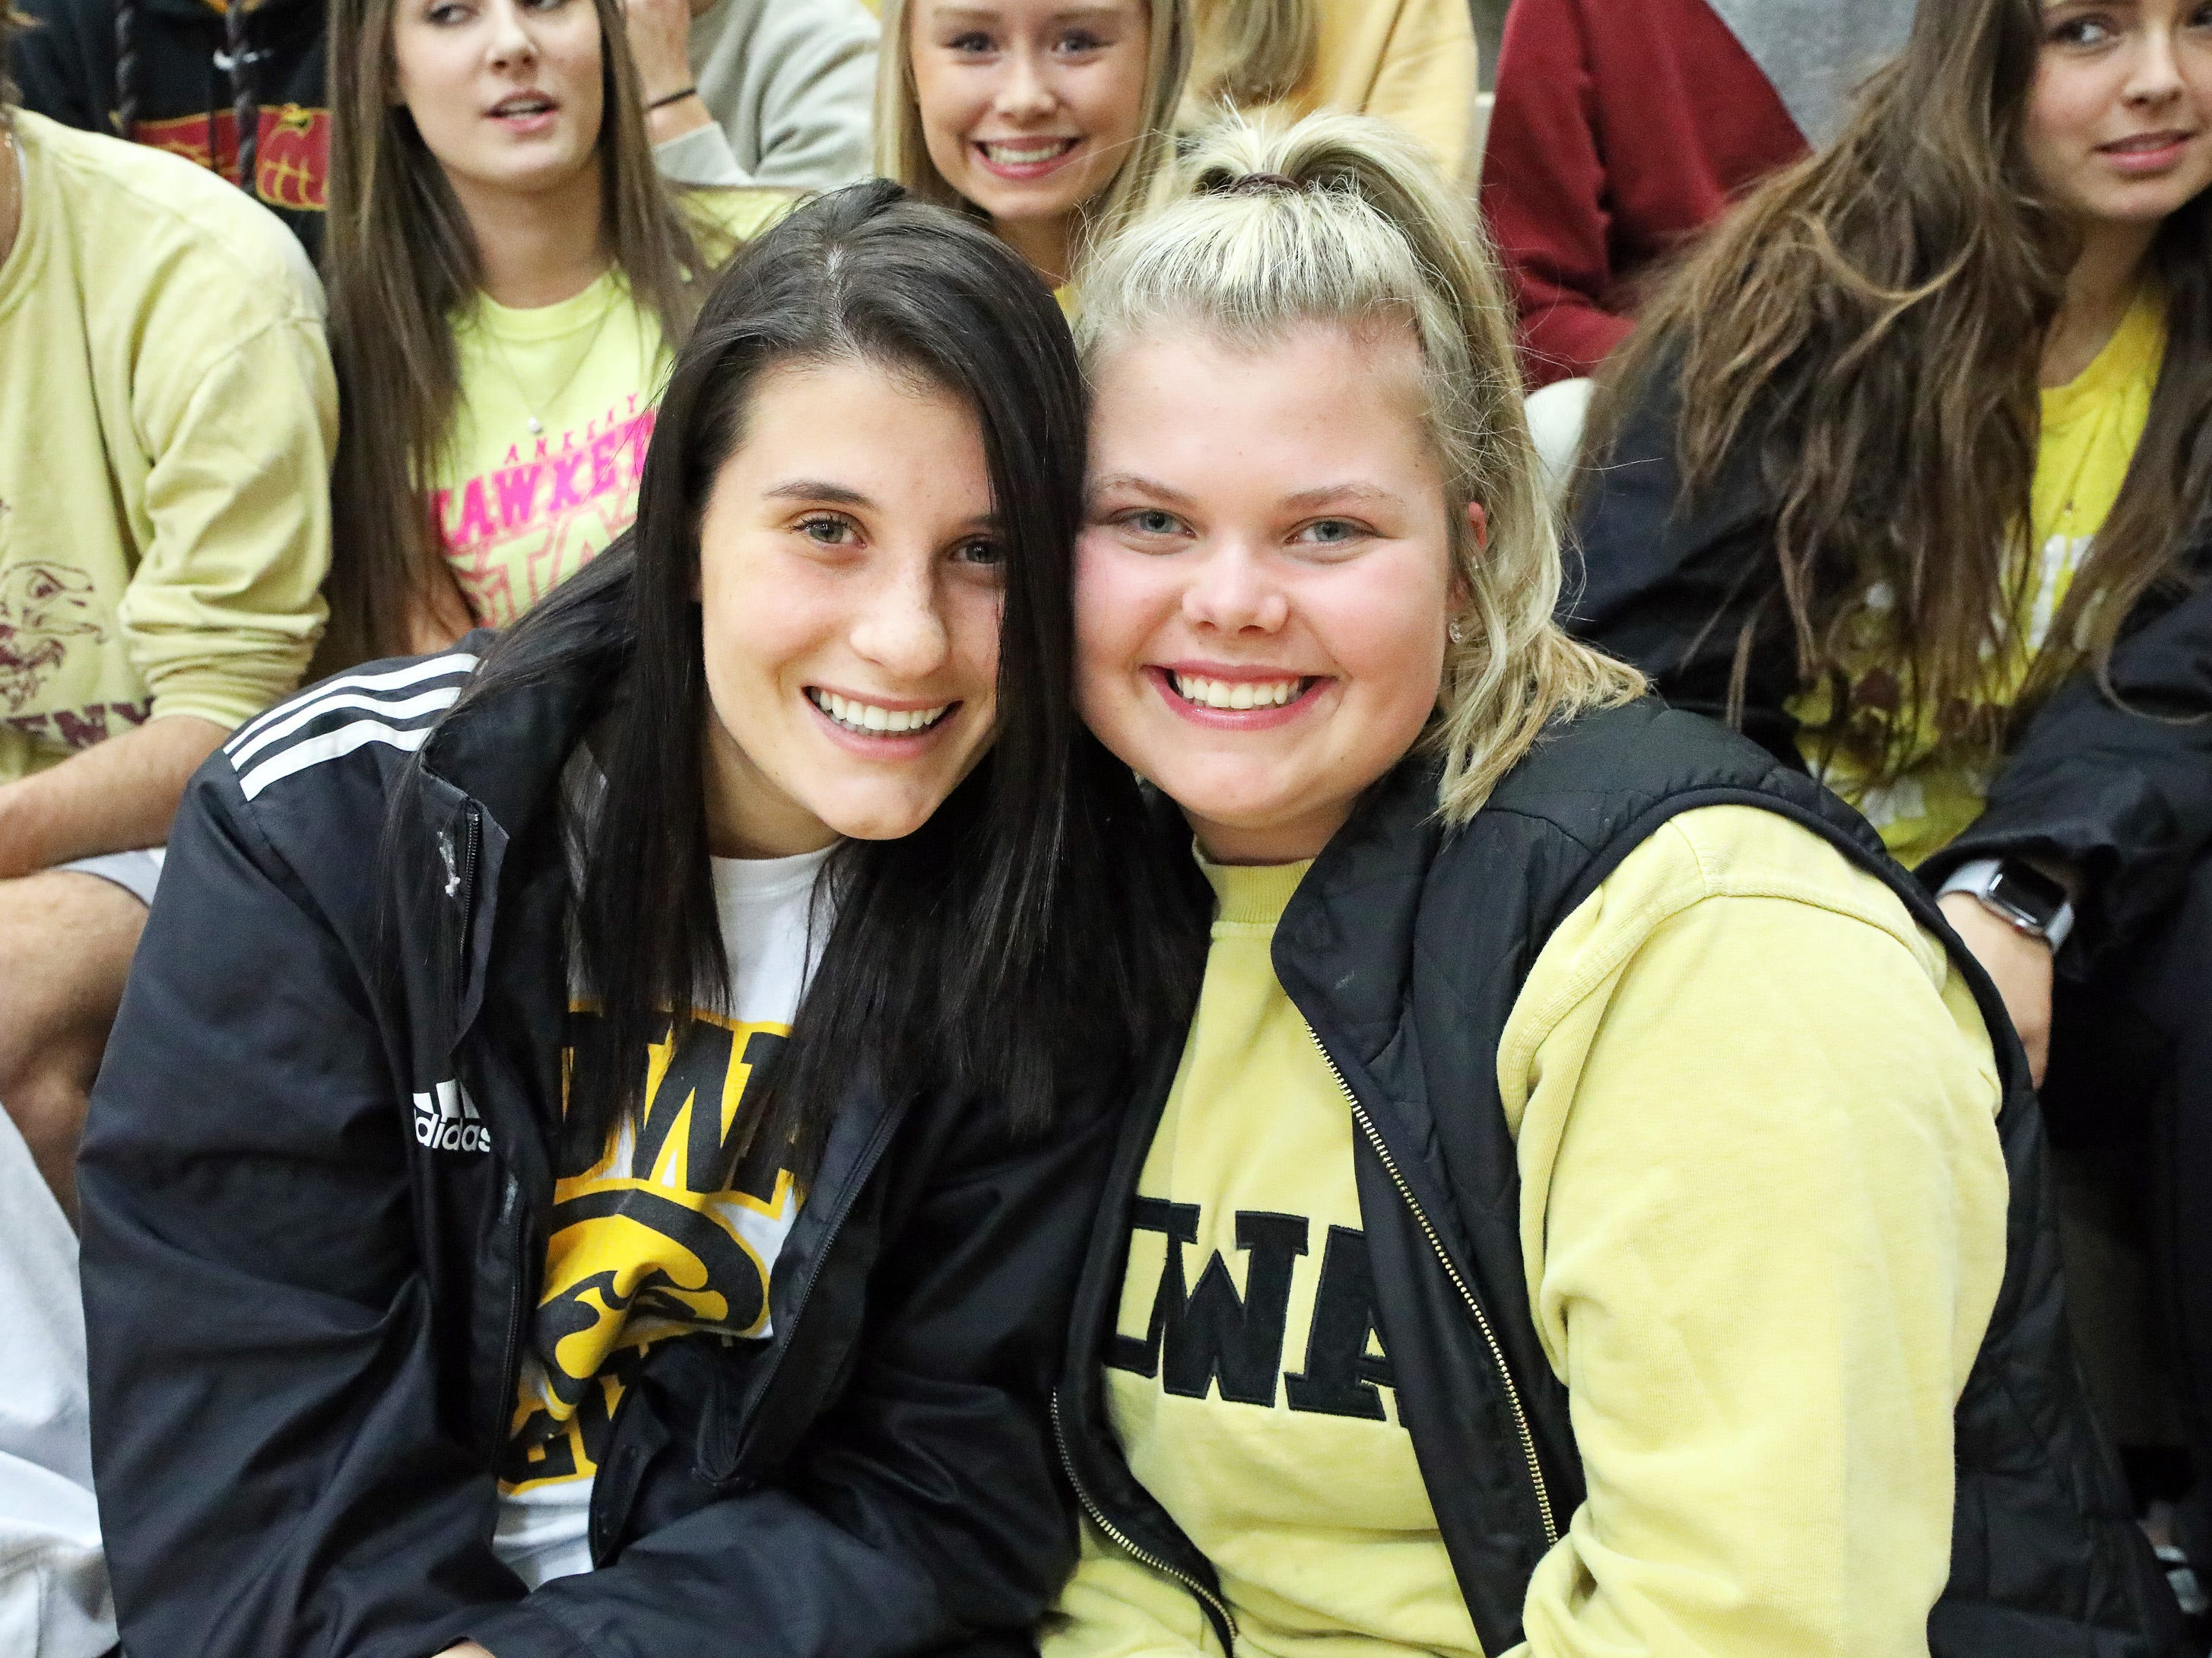 Ankeny High seniors Chloee Kooker, left, and Peyton Steinfeldt enjoy the game as the Ankeny Hawks compete against the Urbandale J-Hawks in high school basketball on Friday, Dec. 14, 2018 at Urbandale High School. Ankeny won 62 to 52 to remain undefeated at 6-0.